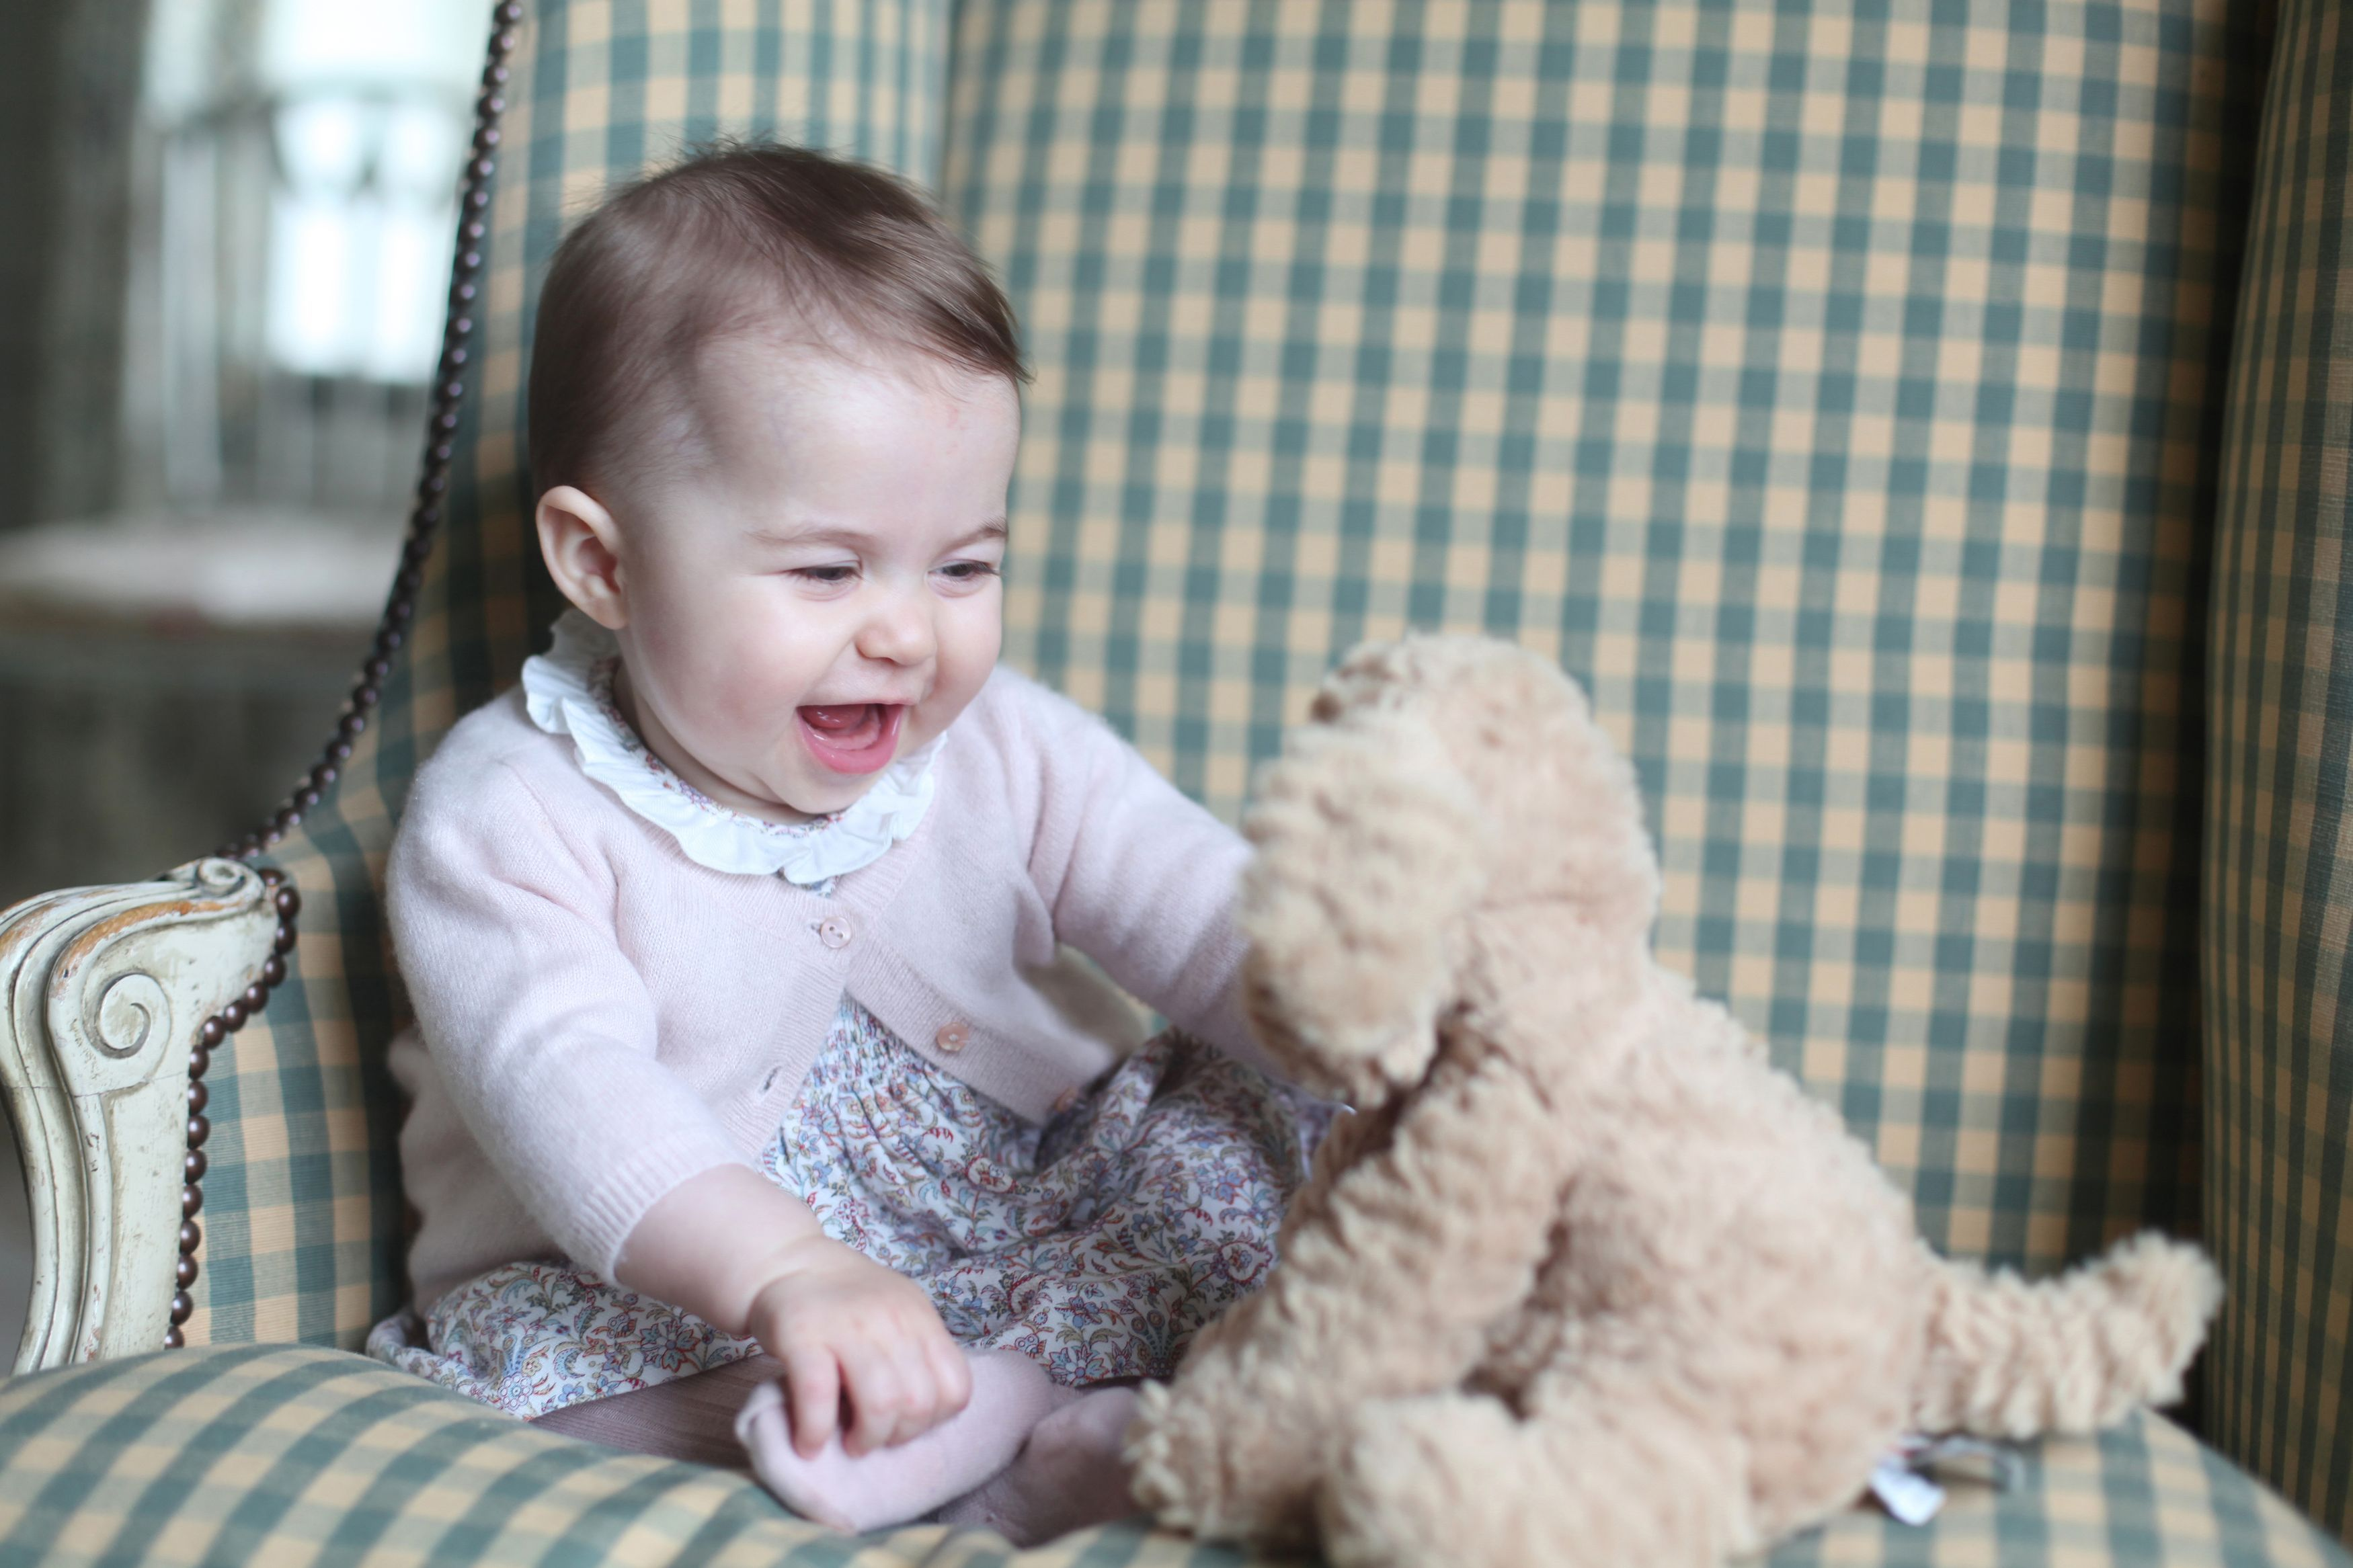 Princess Charlotte with her cuddly toy dog at Anmer Hall in Sandringham, UK in Nov. 2015.